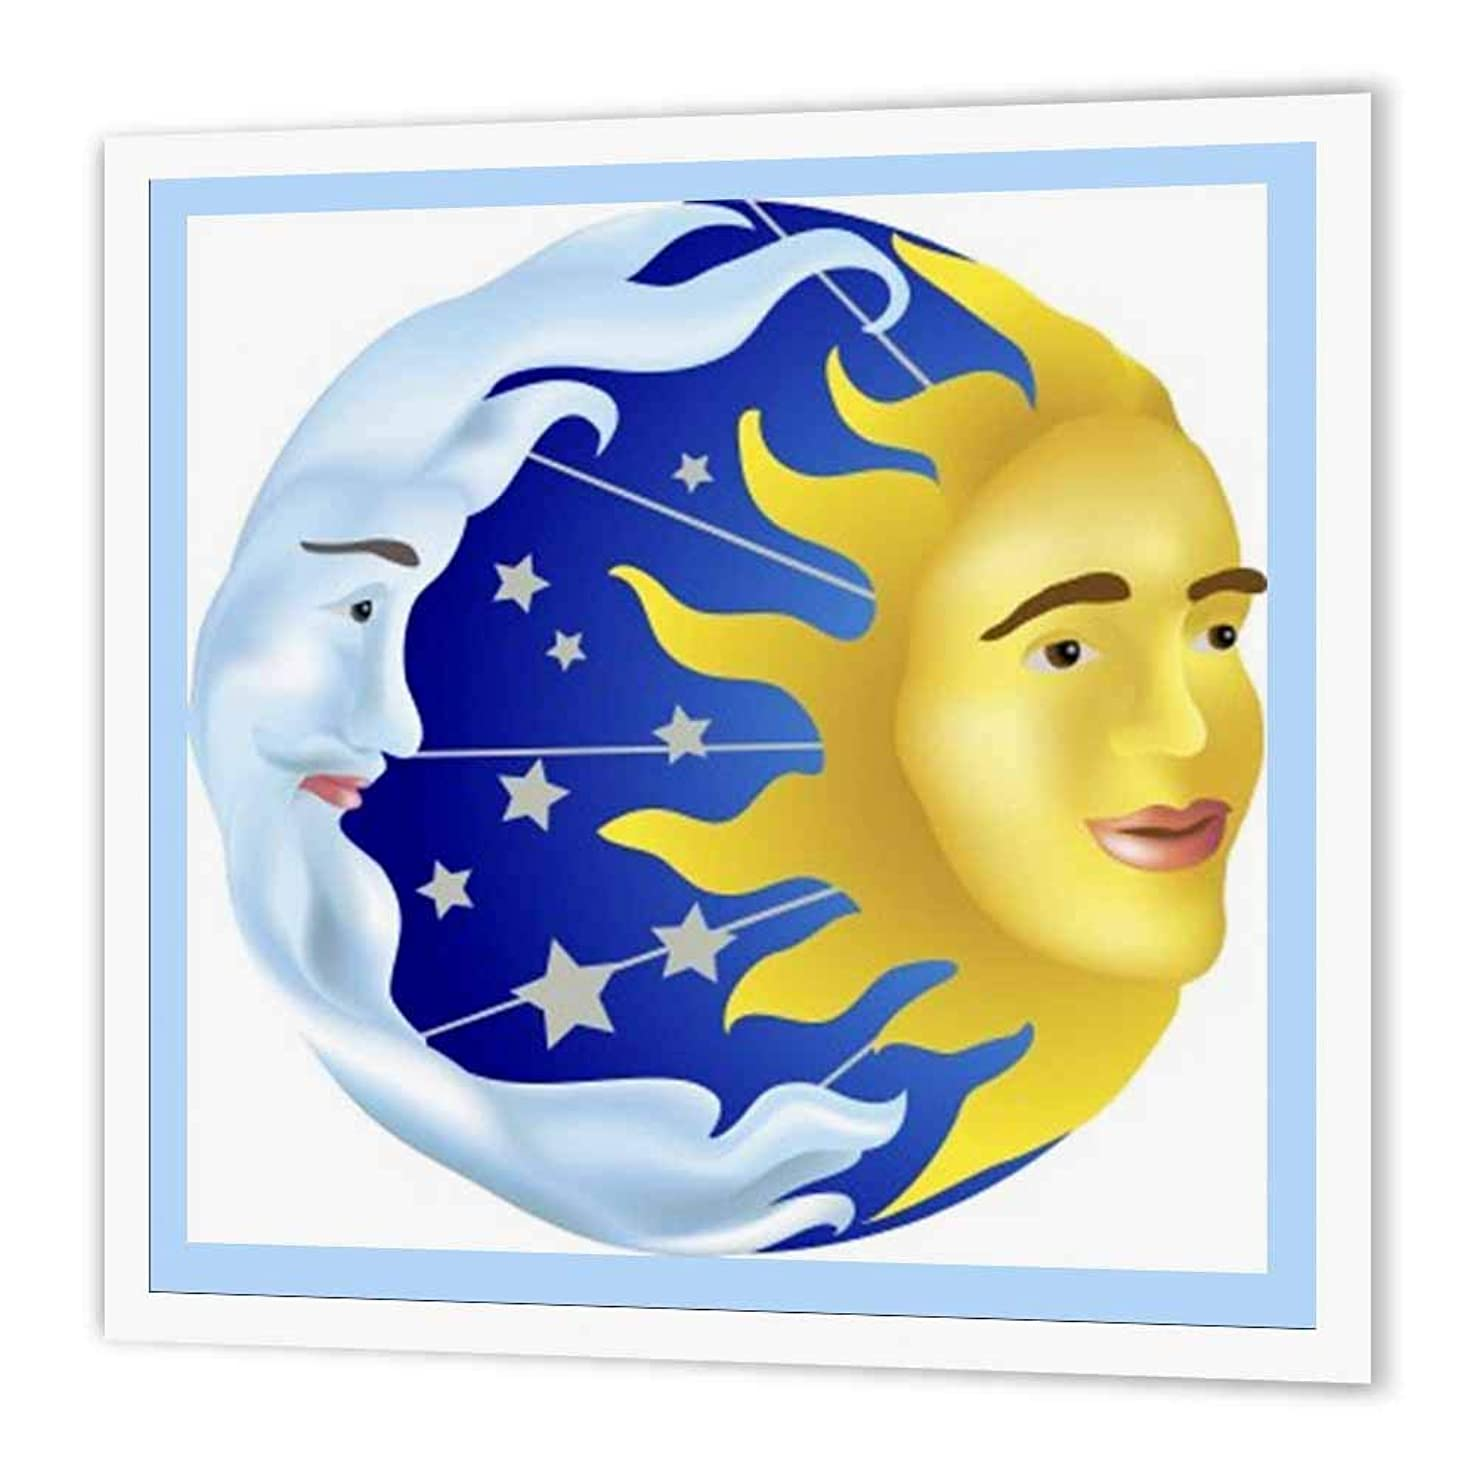 3dRose ht_39599_3 Sun Moon and Stars-Iron on Heat Transfer for Material, 10 by 10-Inch, White